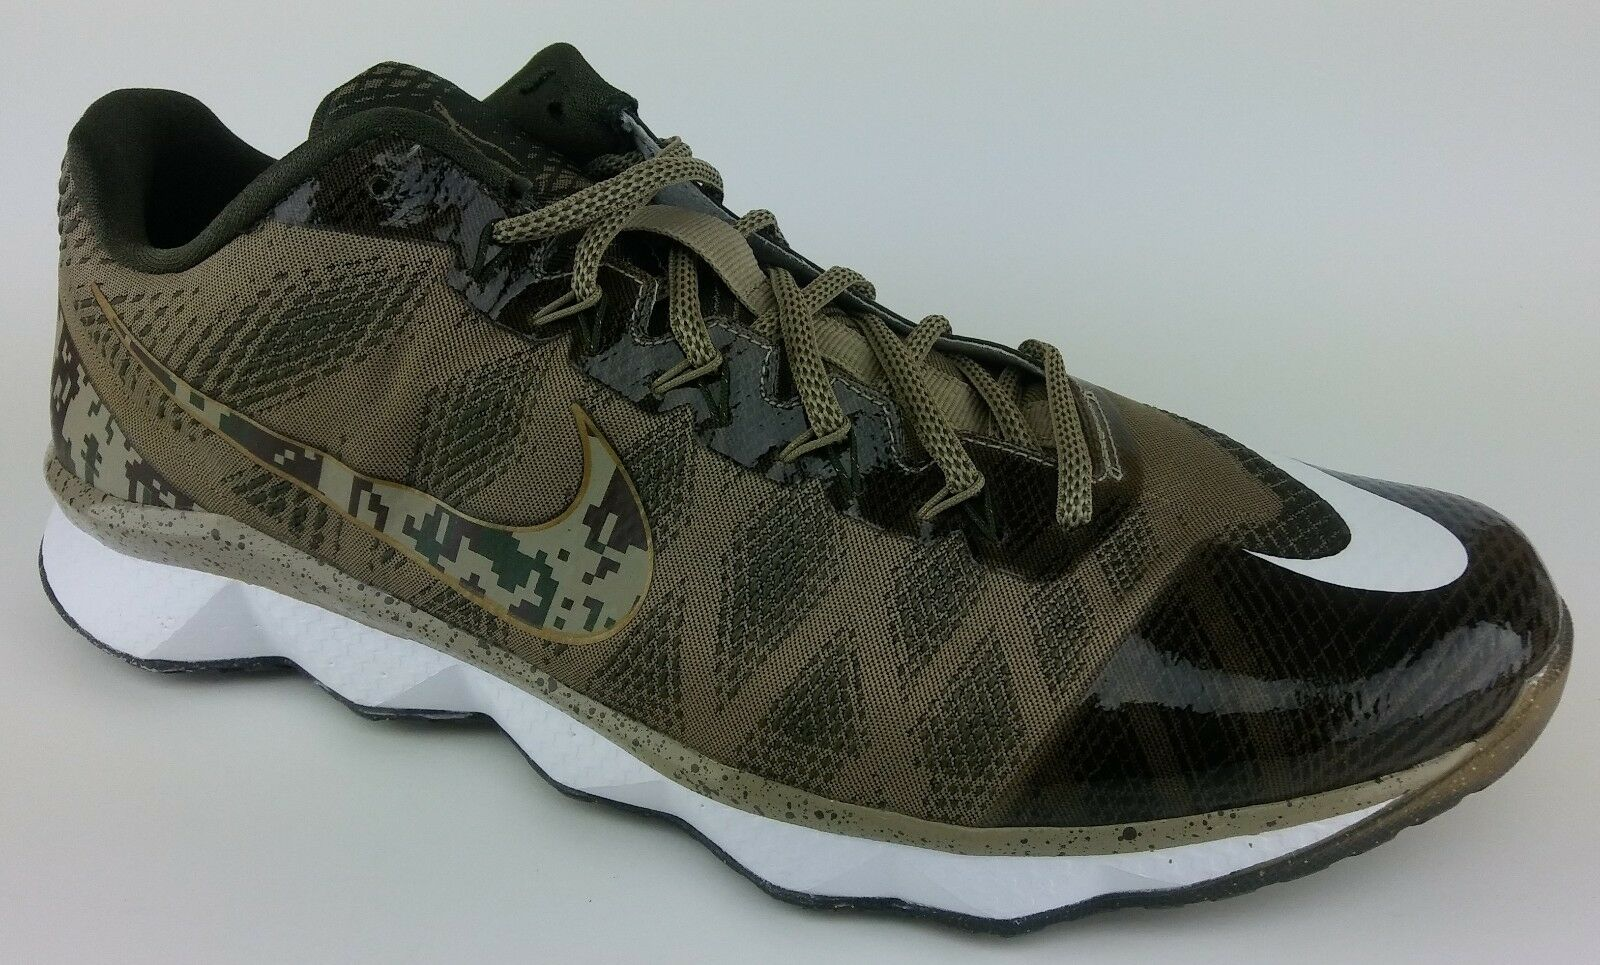 NIKE - CJ3 FLYWEAVE TRAINER SNEAKER -  Men Size 12 -  Brown